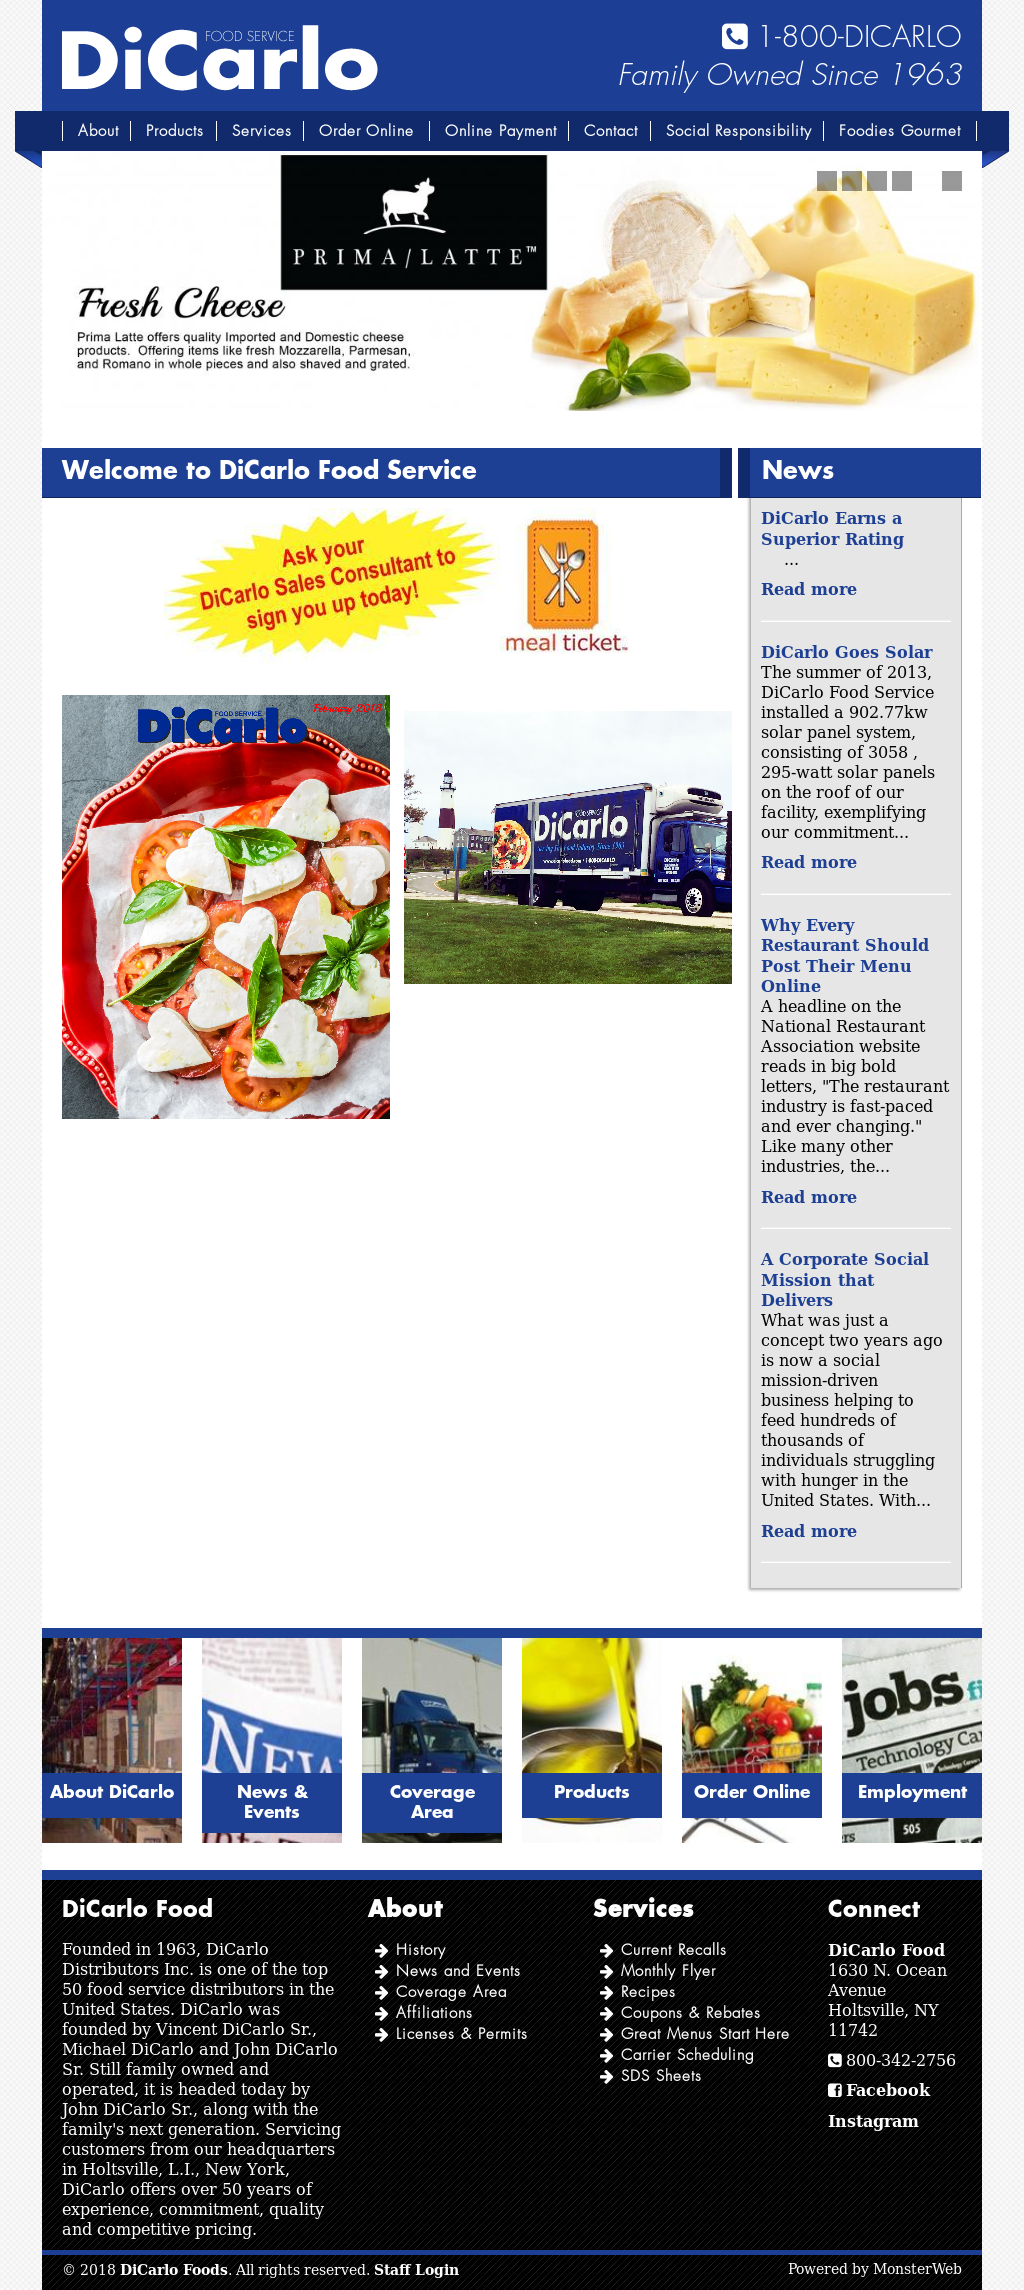 DiCarlo Food Competitors, Revenue and Employees - Owler